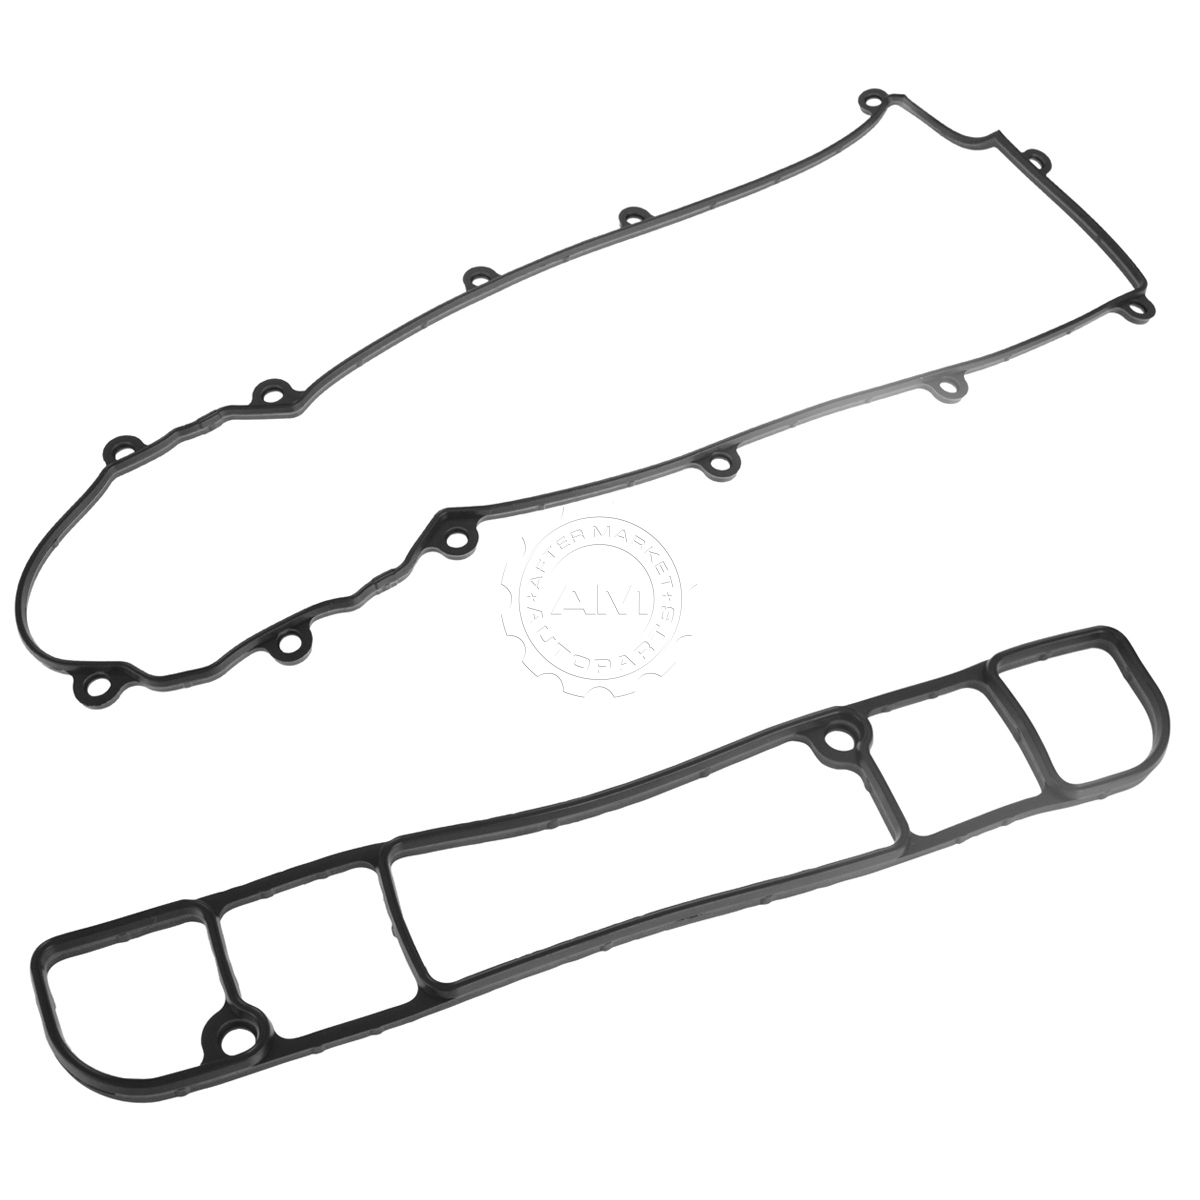 Oem L3k Valve Cover Gasket For Mazda 3 6 Cx 7 2 3